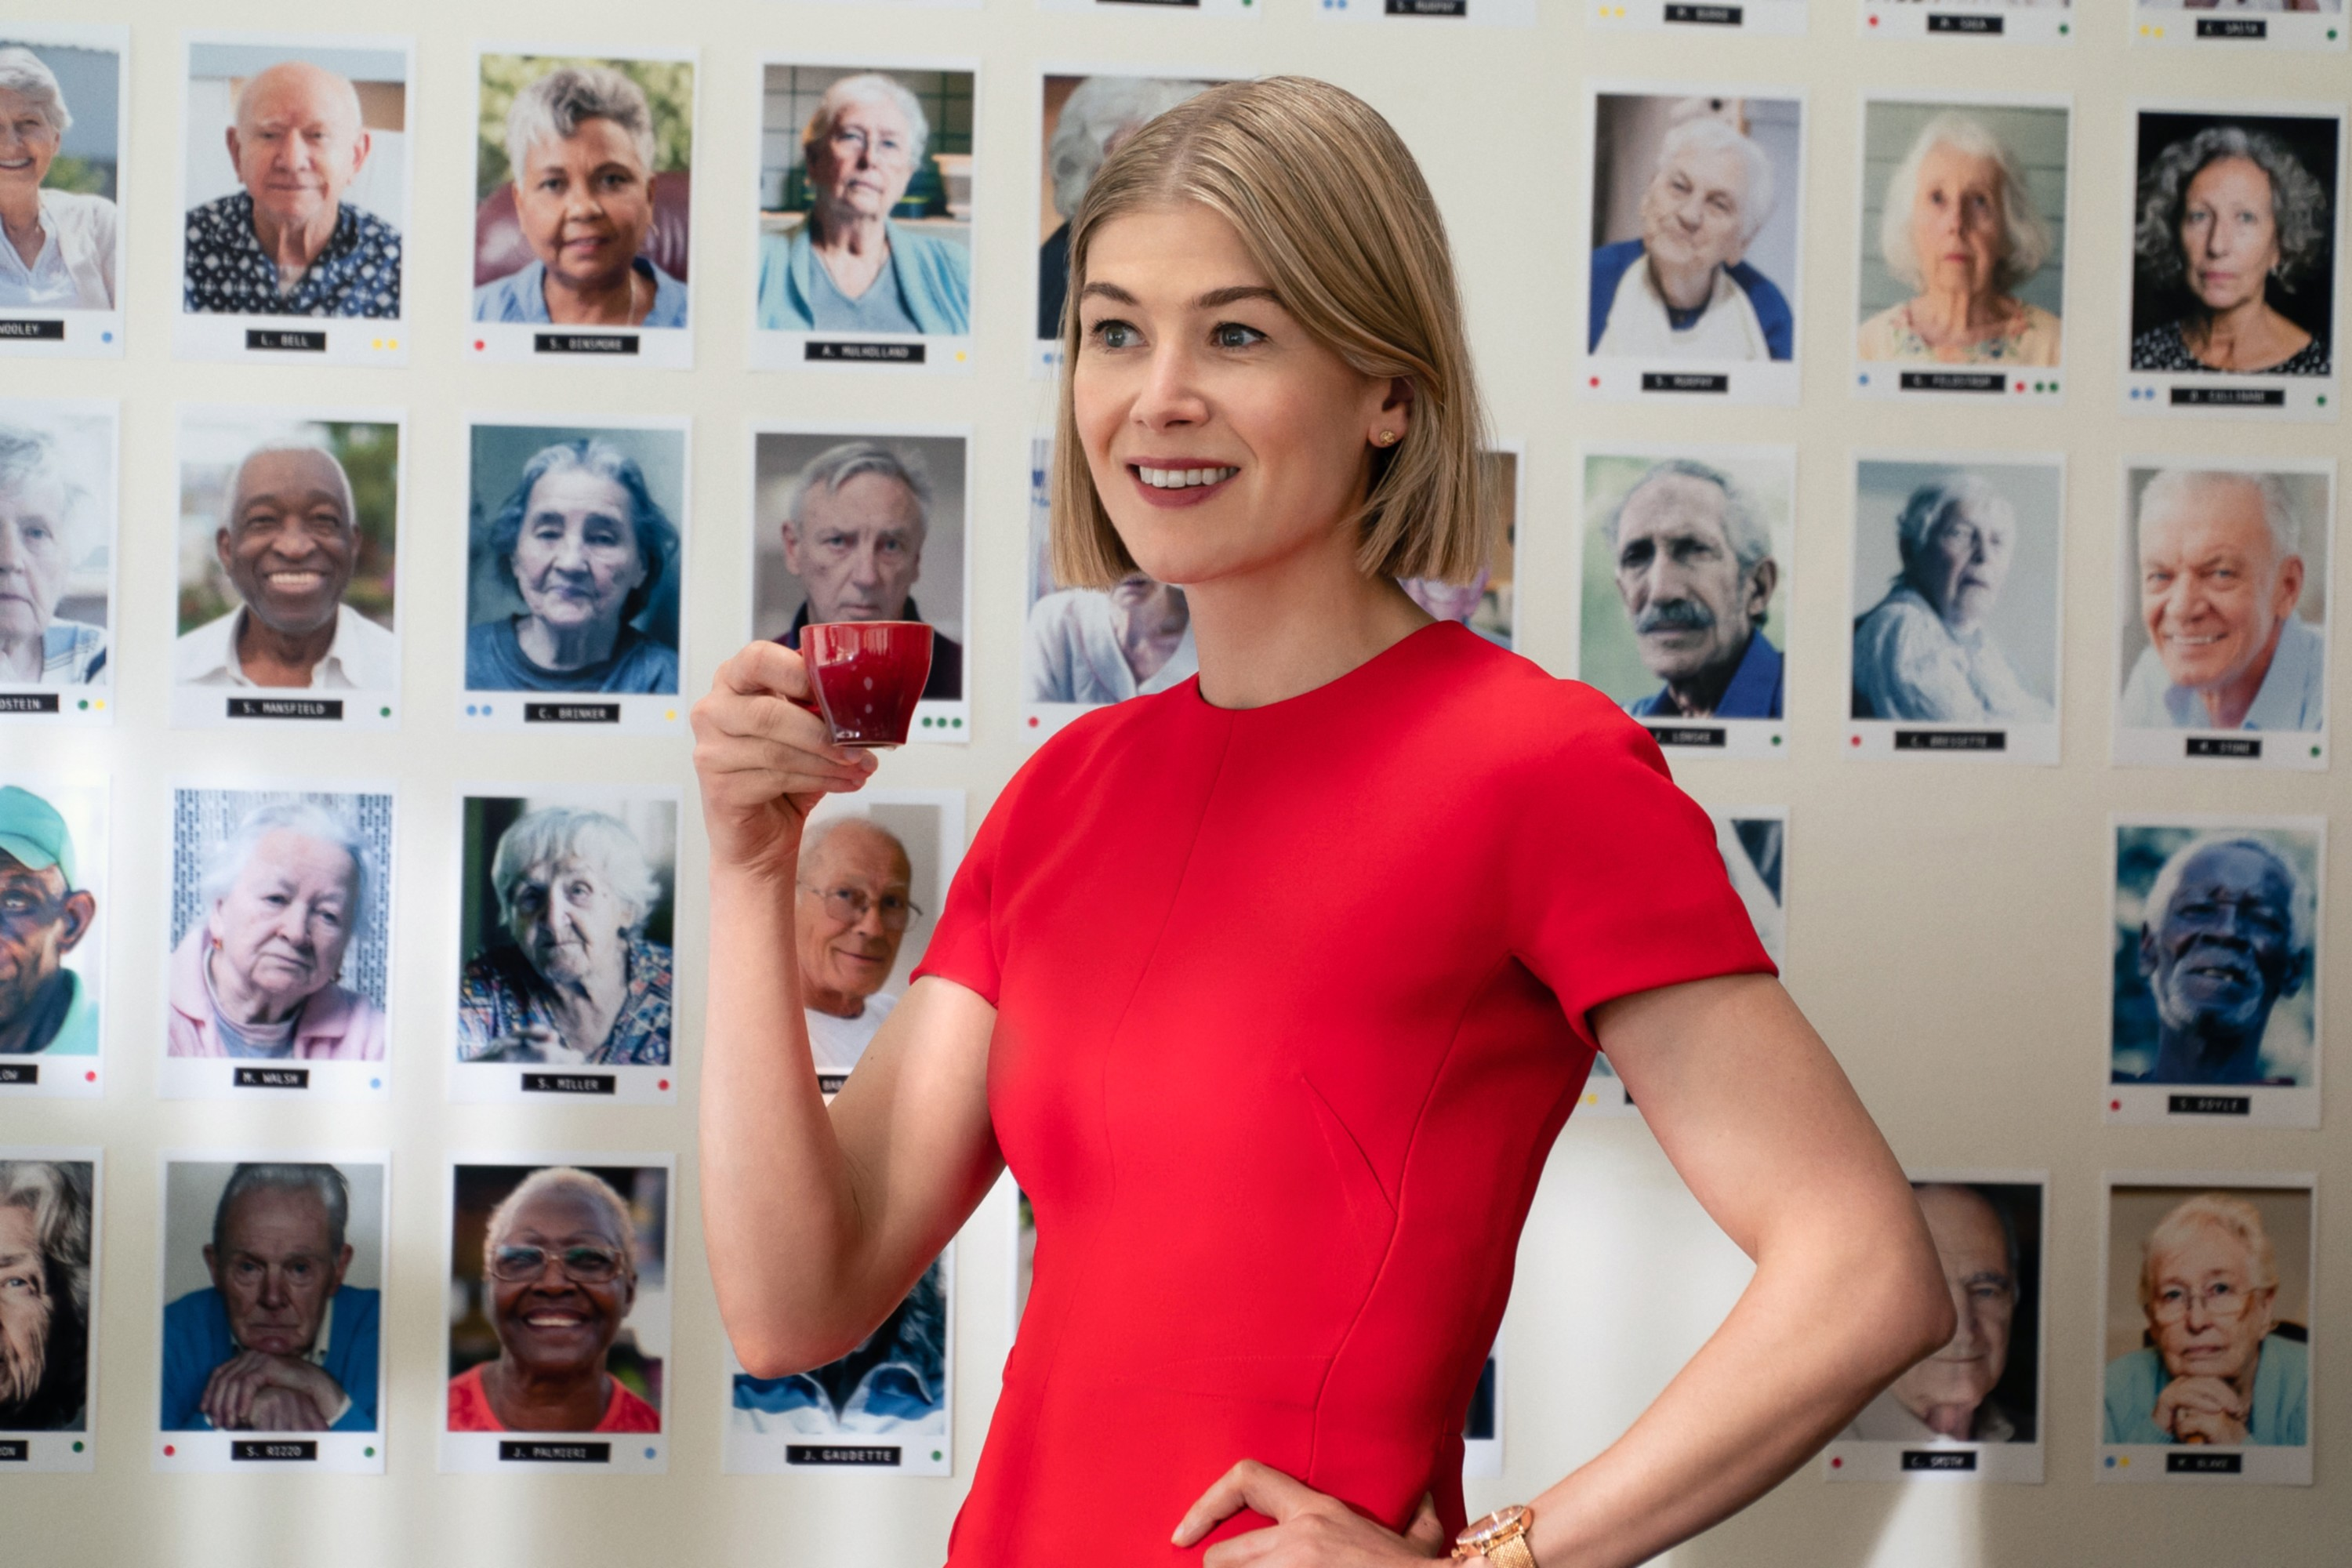 Rosamund Pike Speaks Out About Body Being Altered for Movie Poster - IndieWire